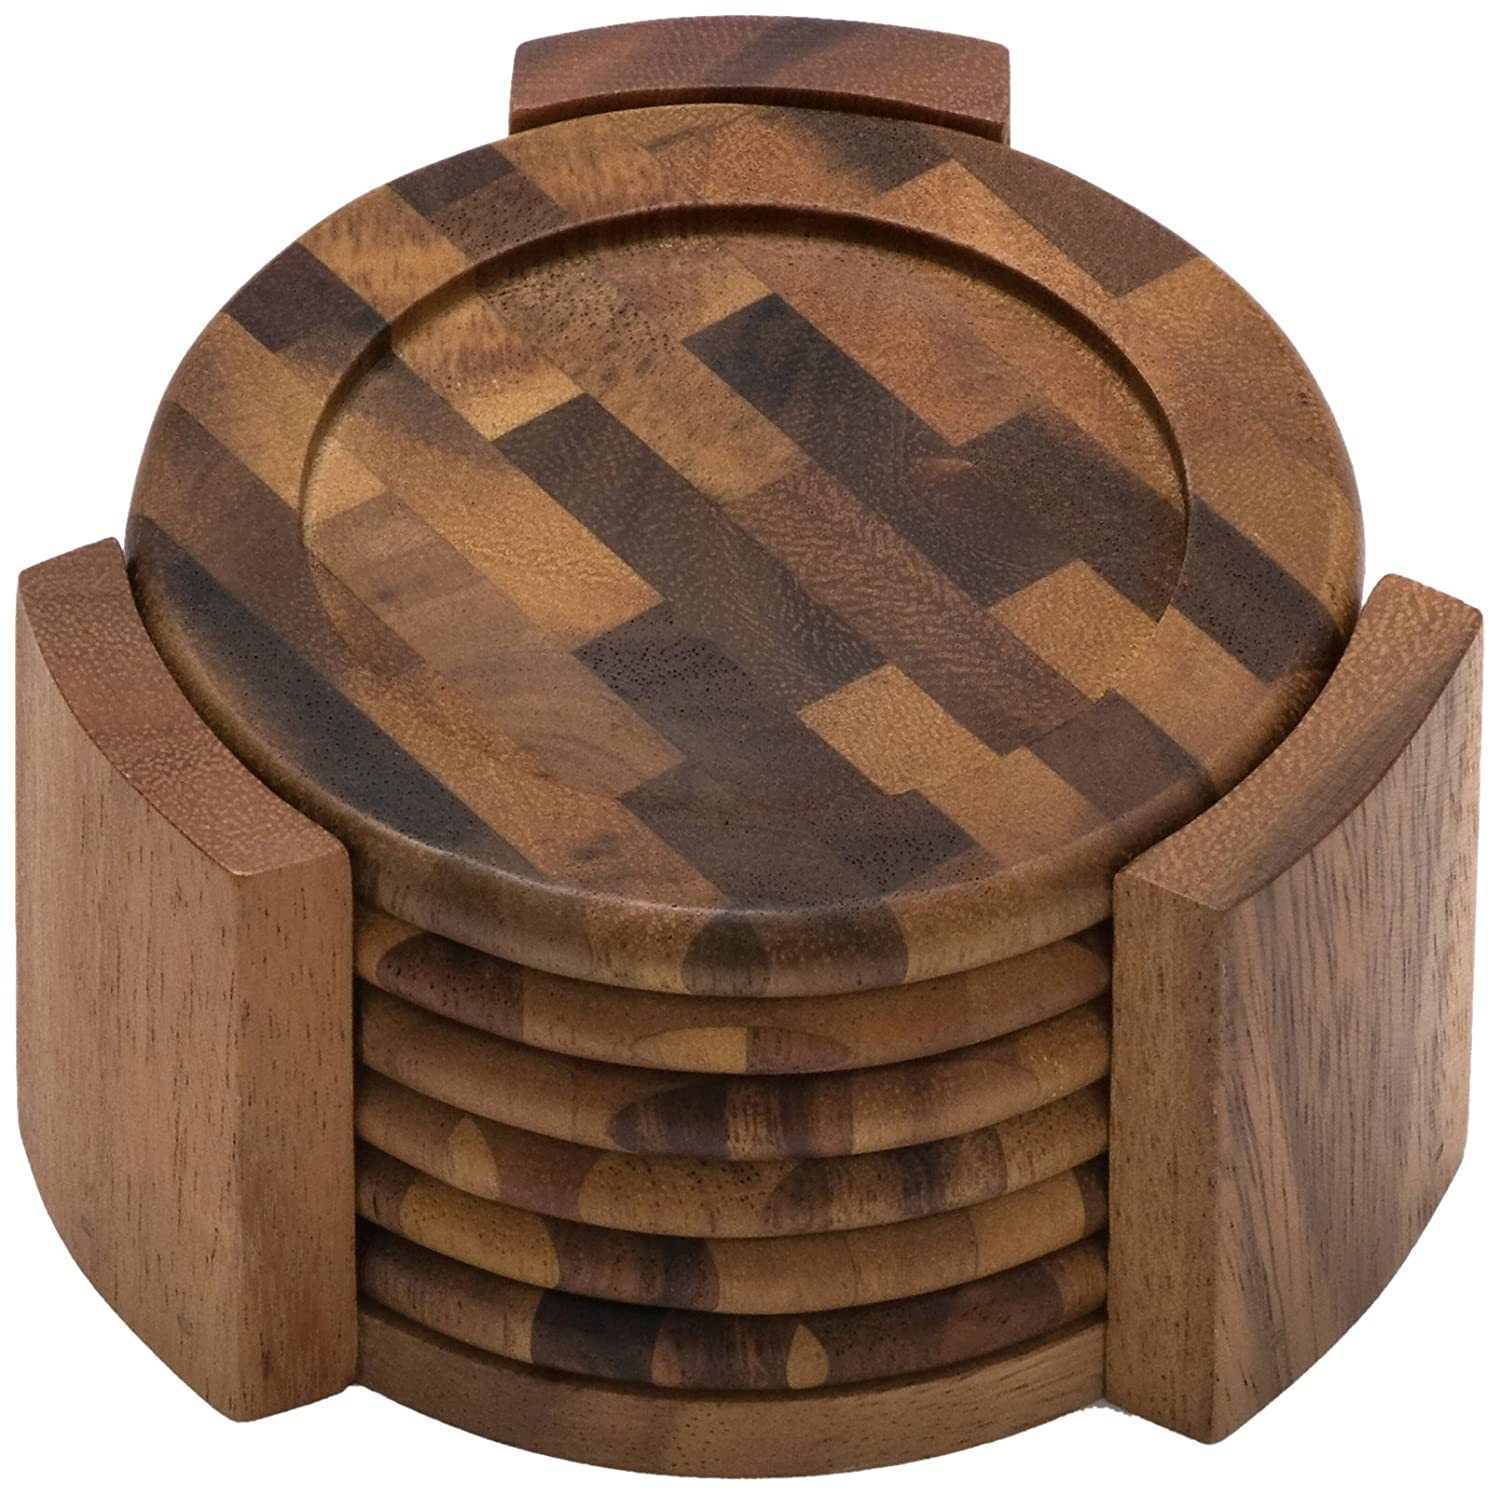 Amazon.com: Wood - Coasters / Bar Tools & Glasses: Home & Kitchen